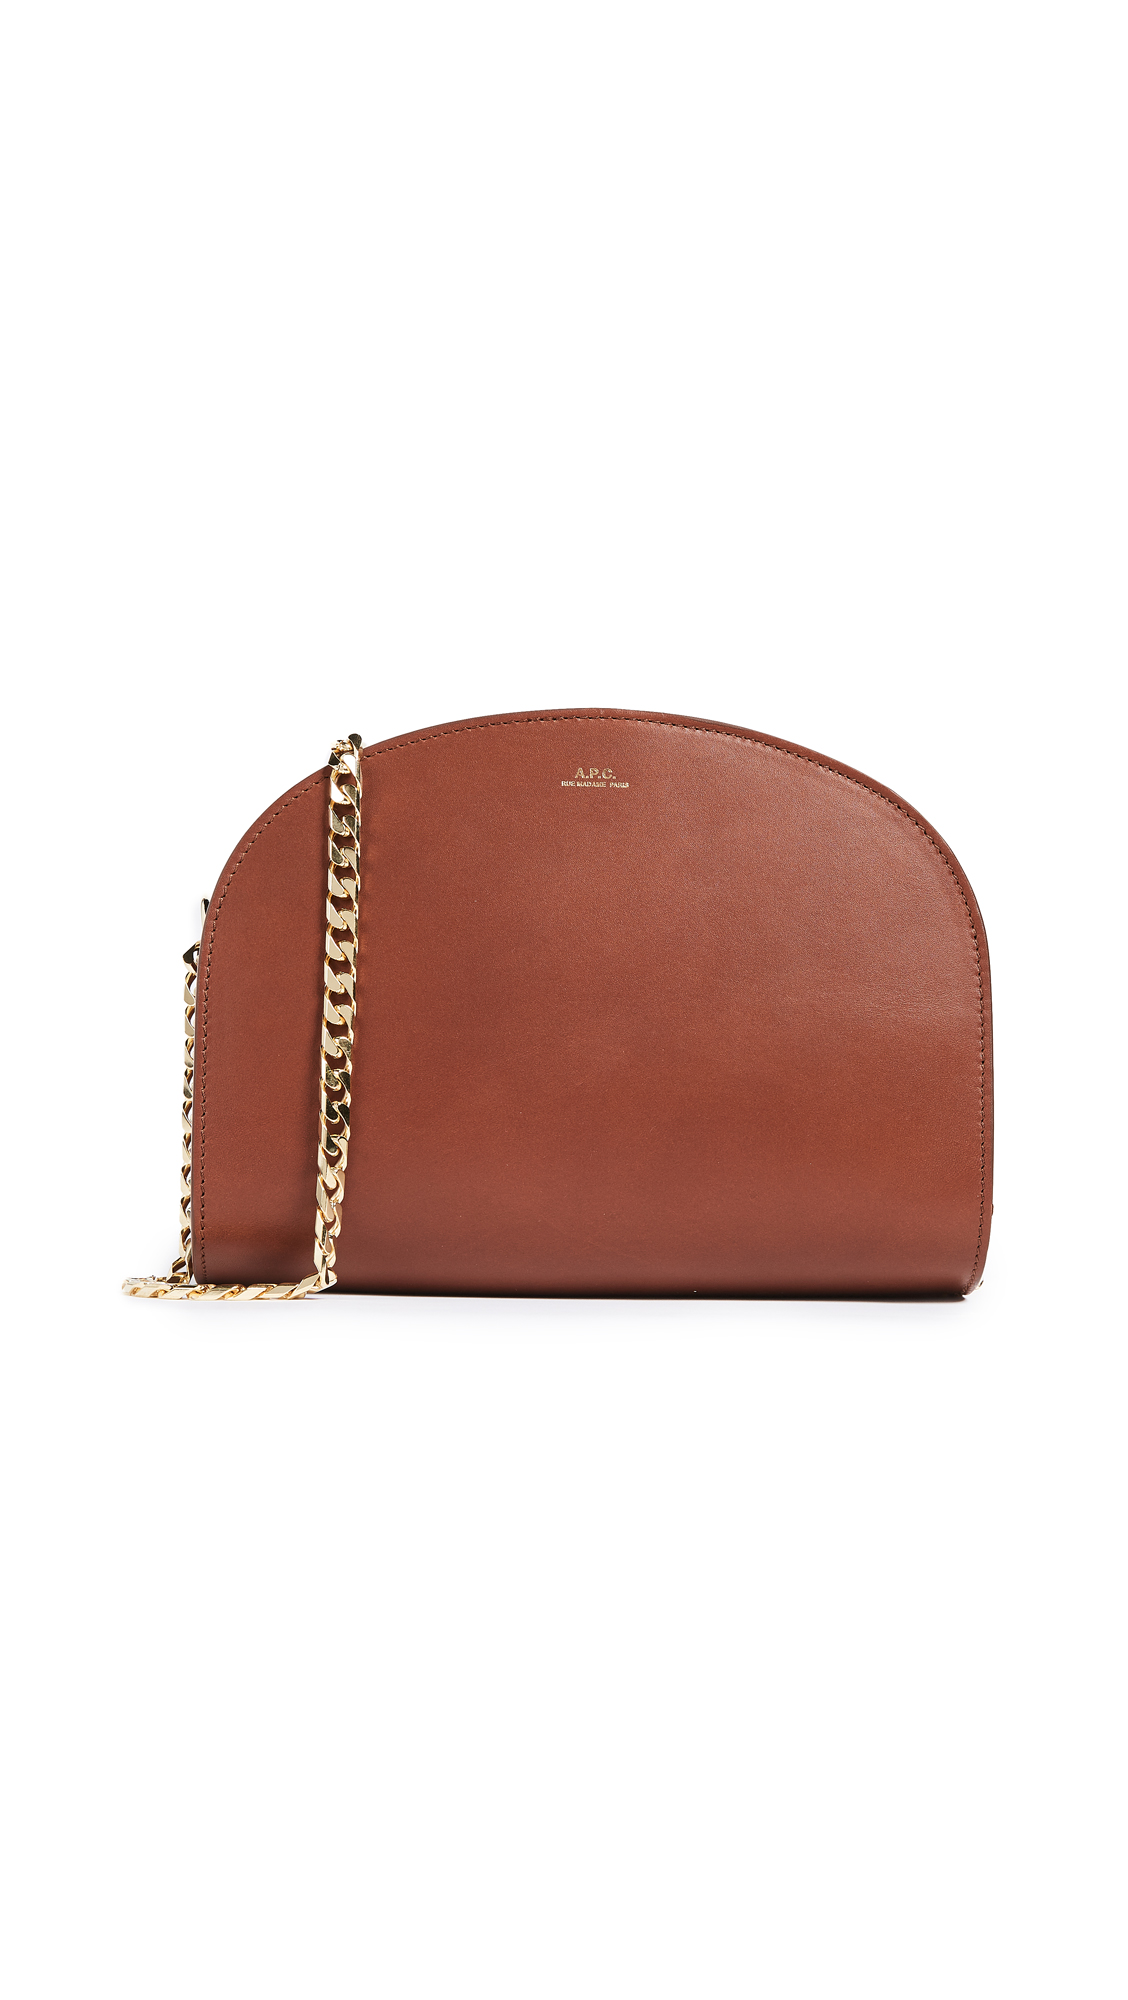 A.P.C. Luna Half Moon Bag - Marron